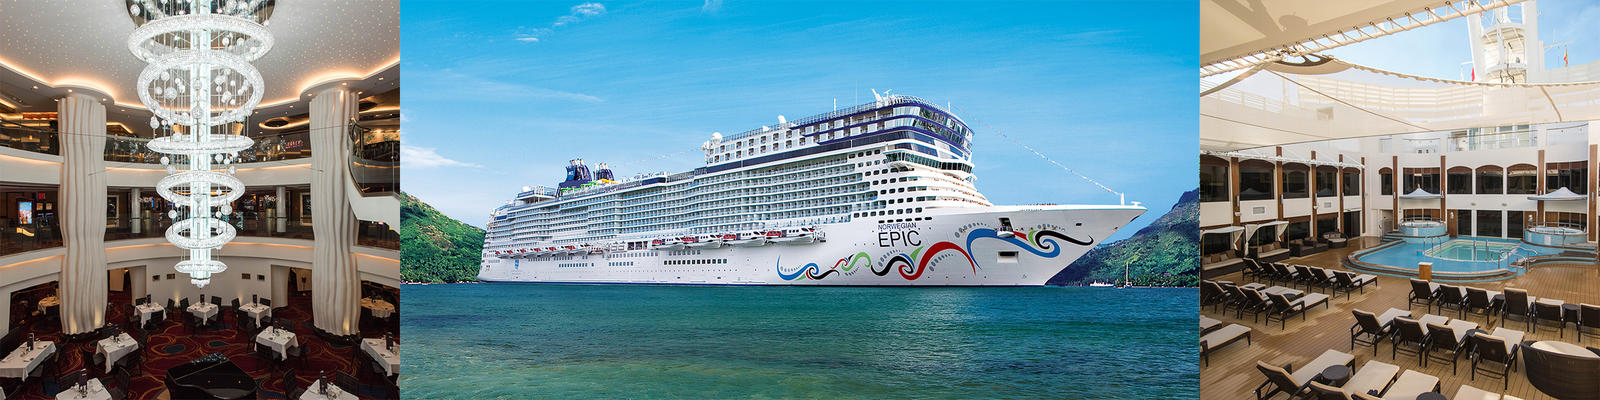 Norwegian Epic Cruise Ship Review Photos Departure Ports On - Cruise ship schedule for grand cayman